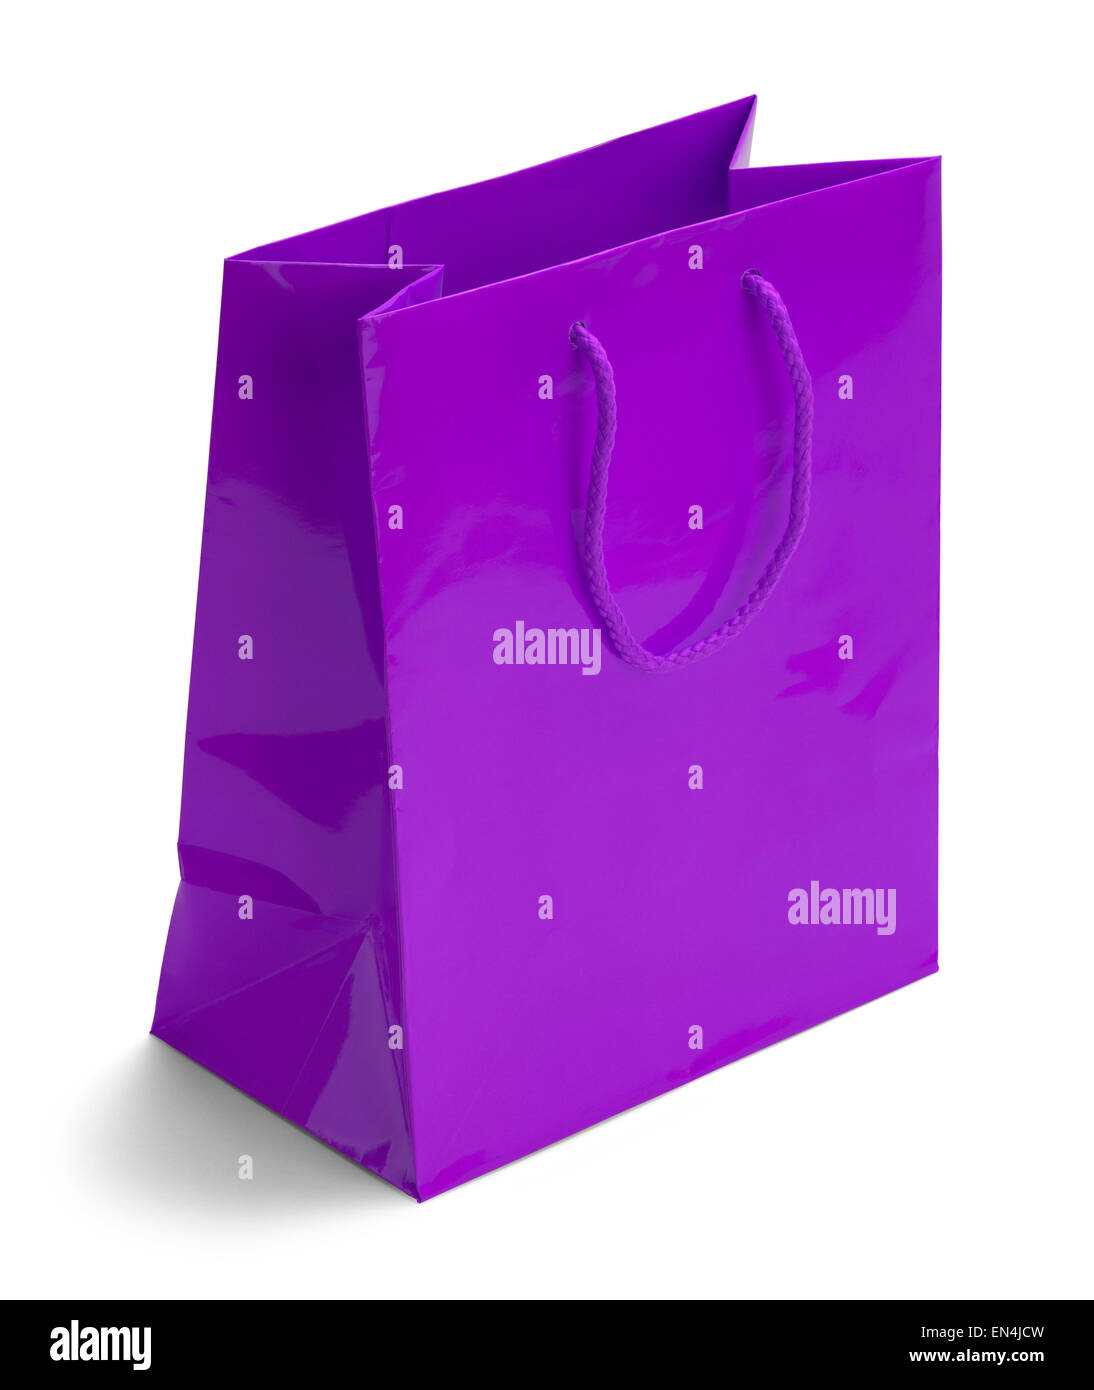 Shiny Purple Retail Shopping Bag Isolated on a White Background. - Stock Image